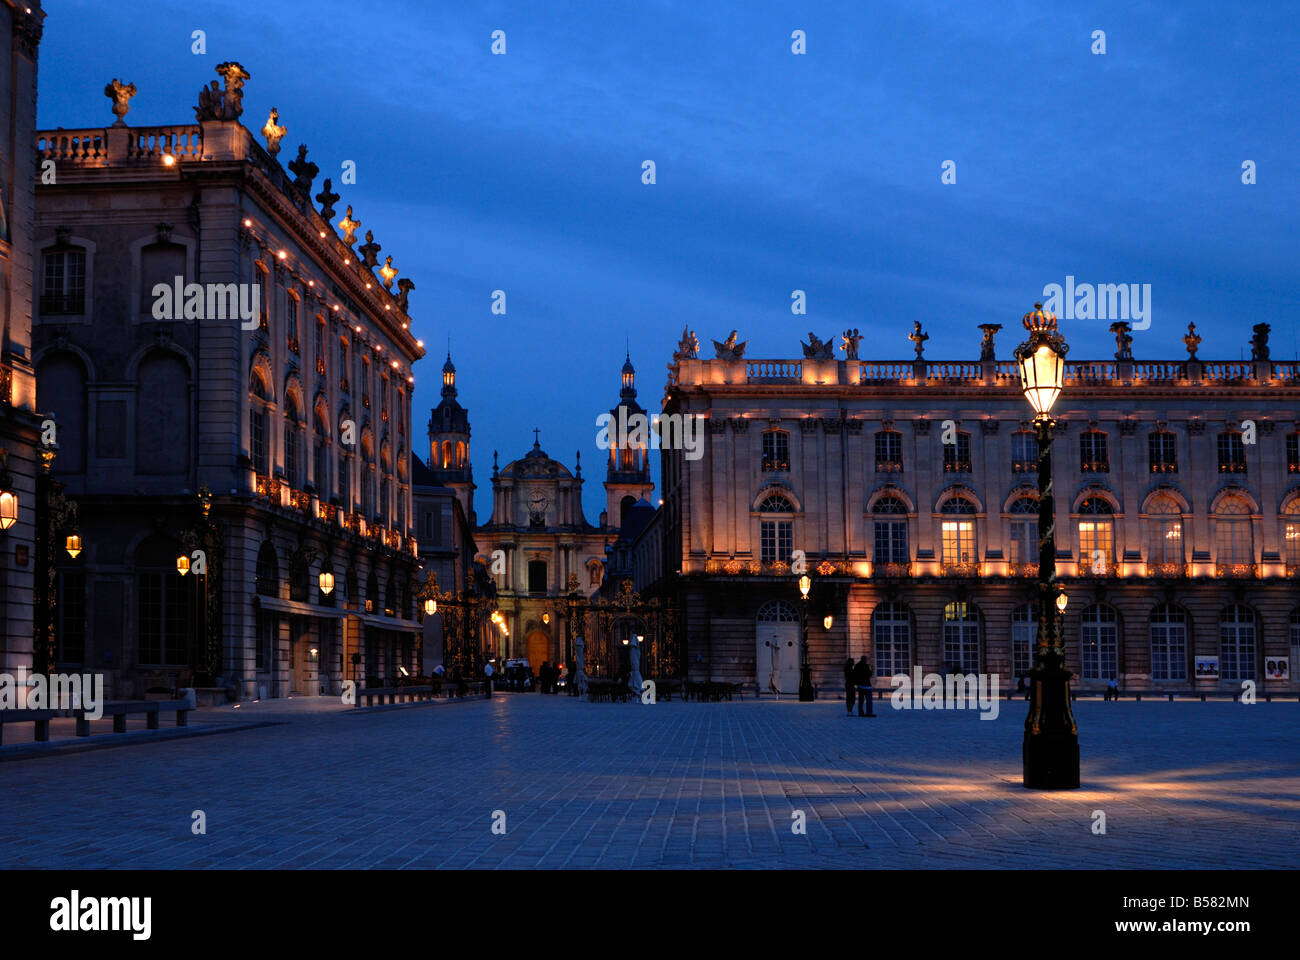 Evening floodlit view of Place Stanislas and the cathedral, UNESCO World Heritage Site, Nancy, Lorraine, France, Stock Photo